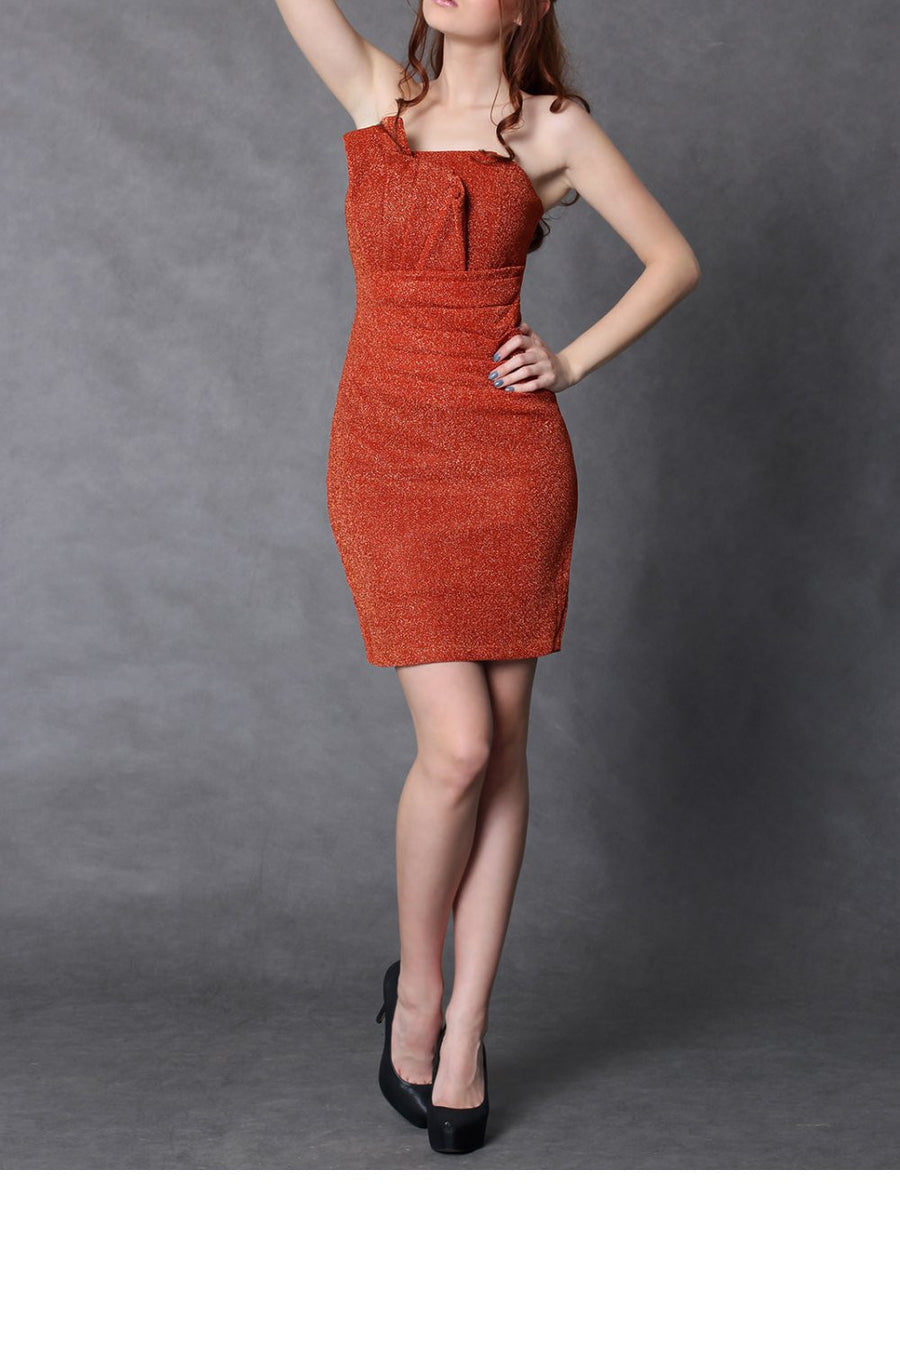 Evening dress 29074 YourNewStyle-Evening Dresses-YourNewStyle-orange-S-Très Fancy